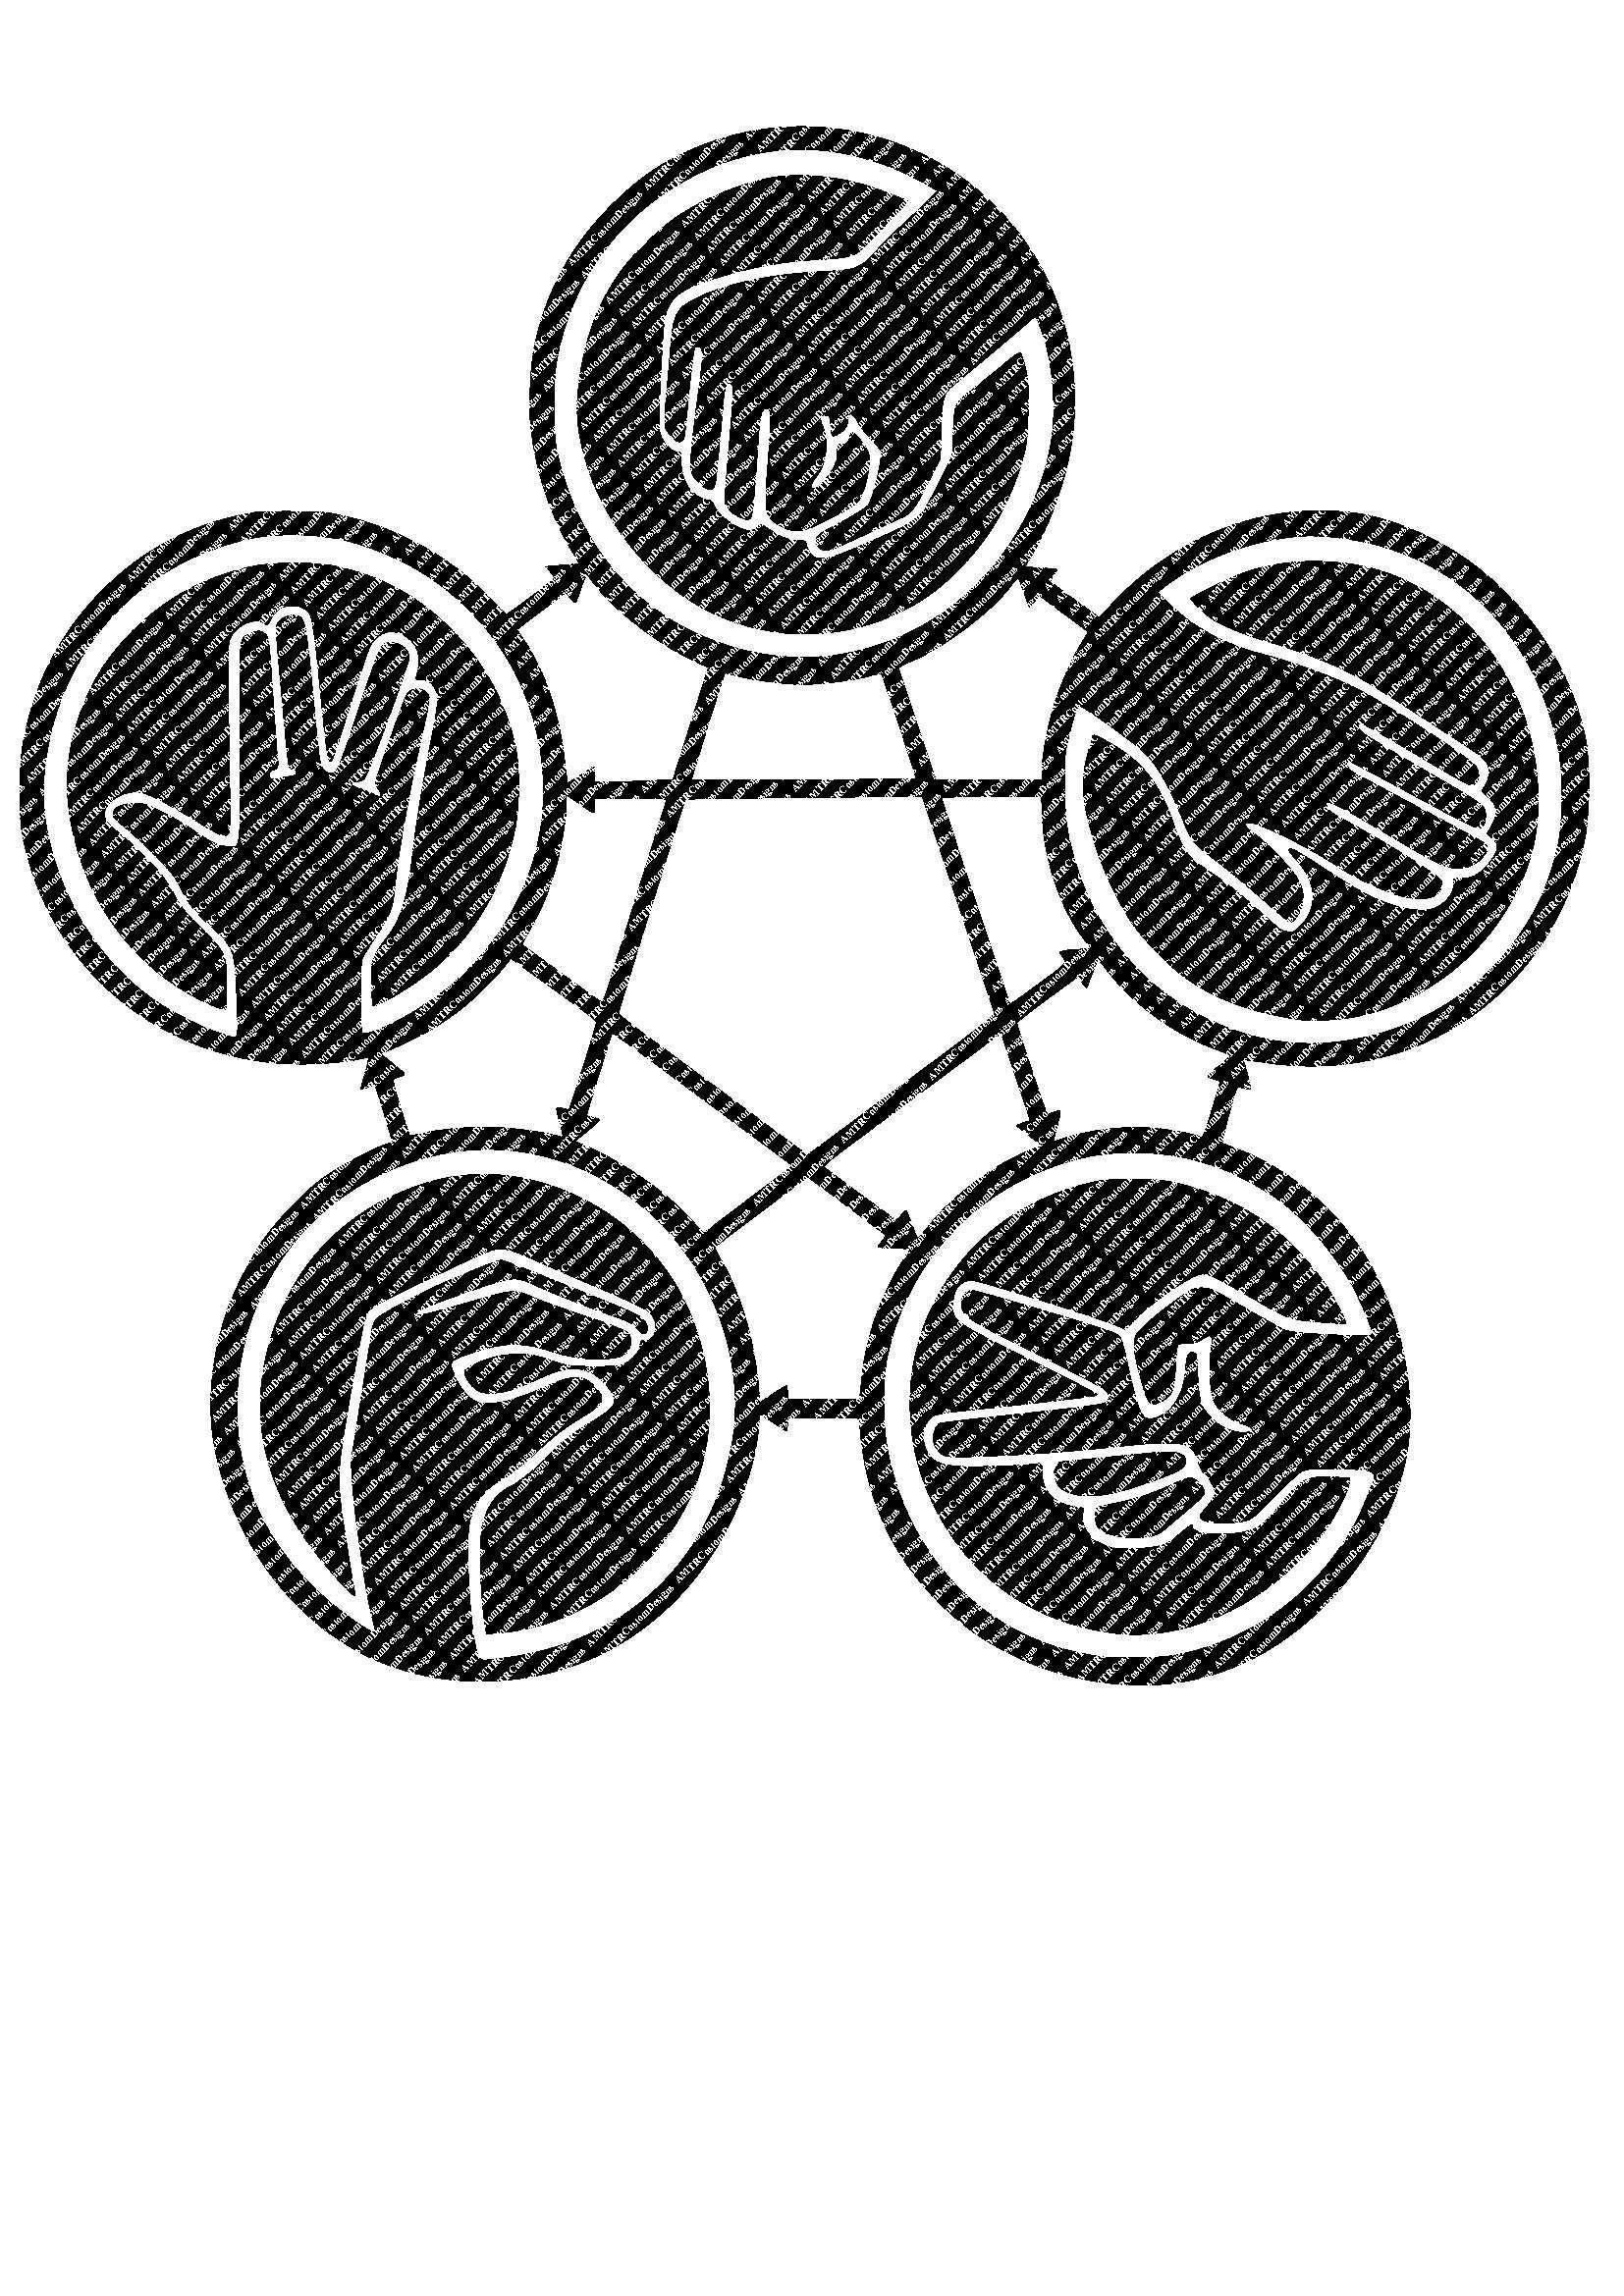 rock paper scissors lizard spock hand gestures and rules svg